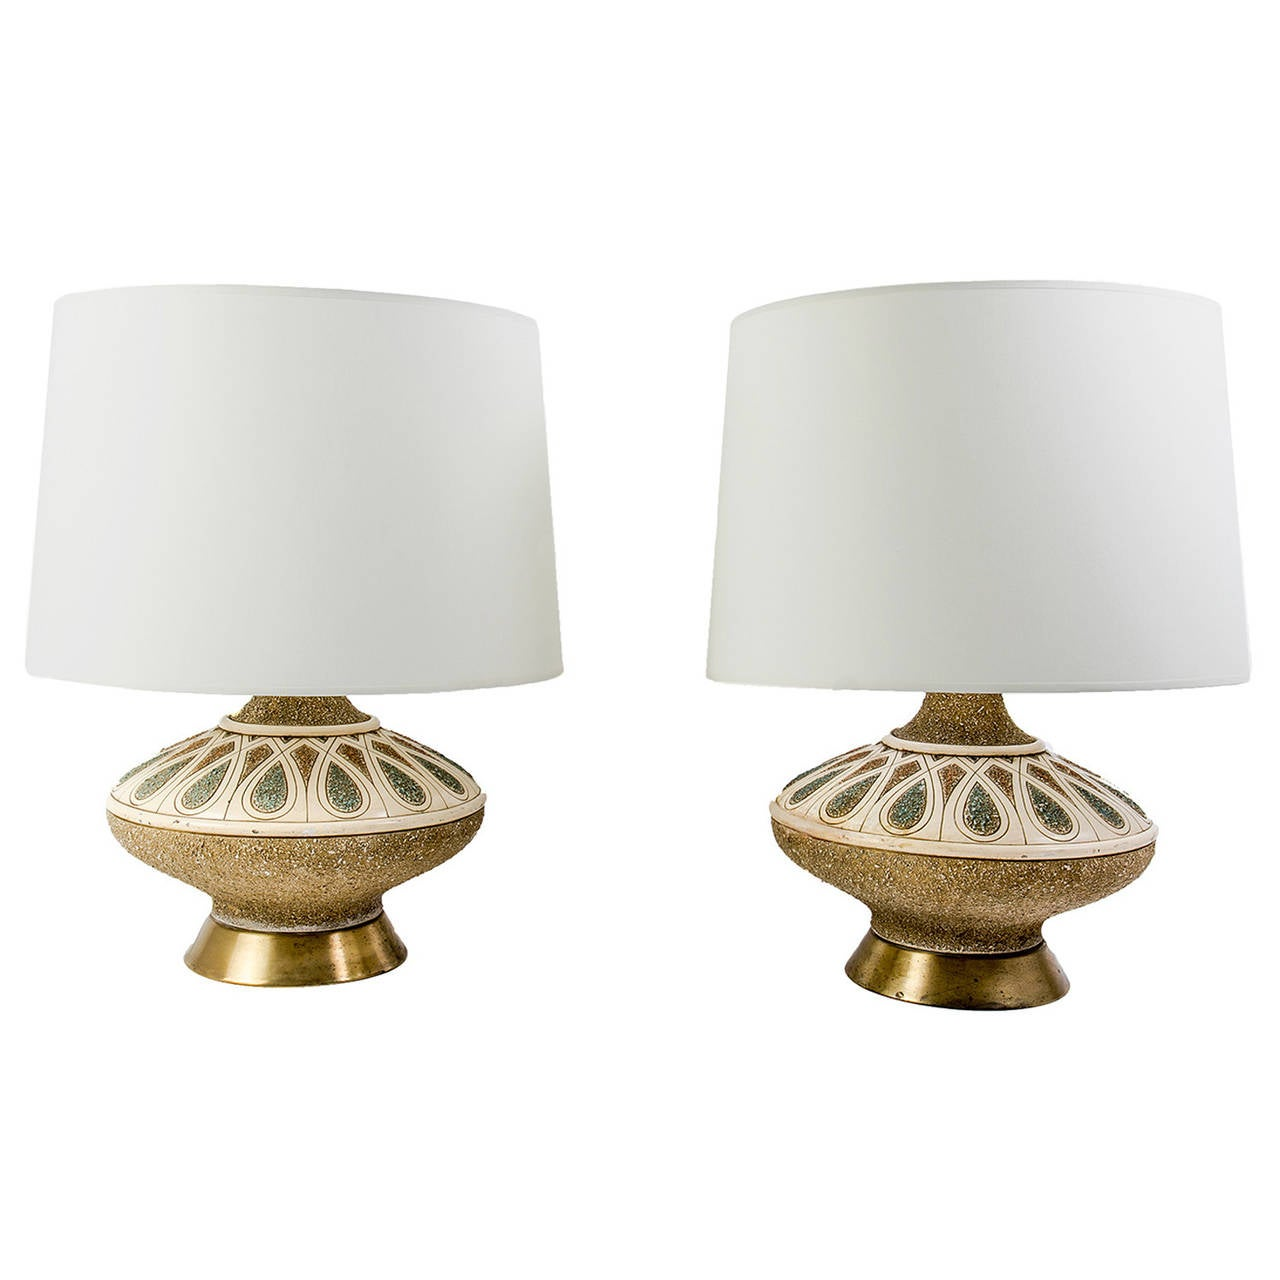 American Art Pottery Table Lamps By The Quartite Creative